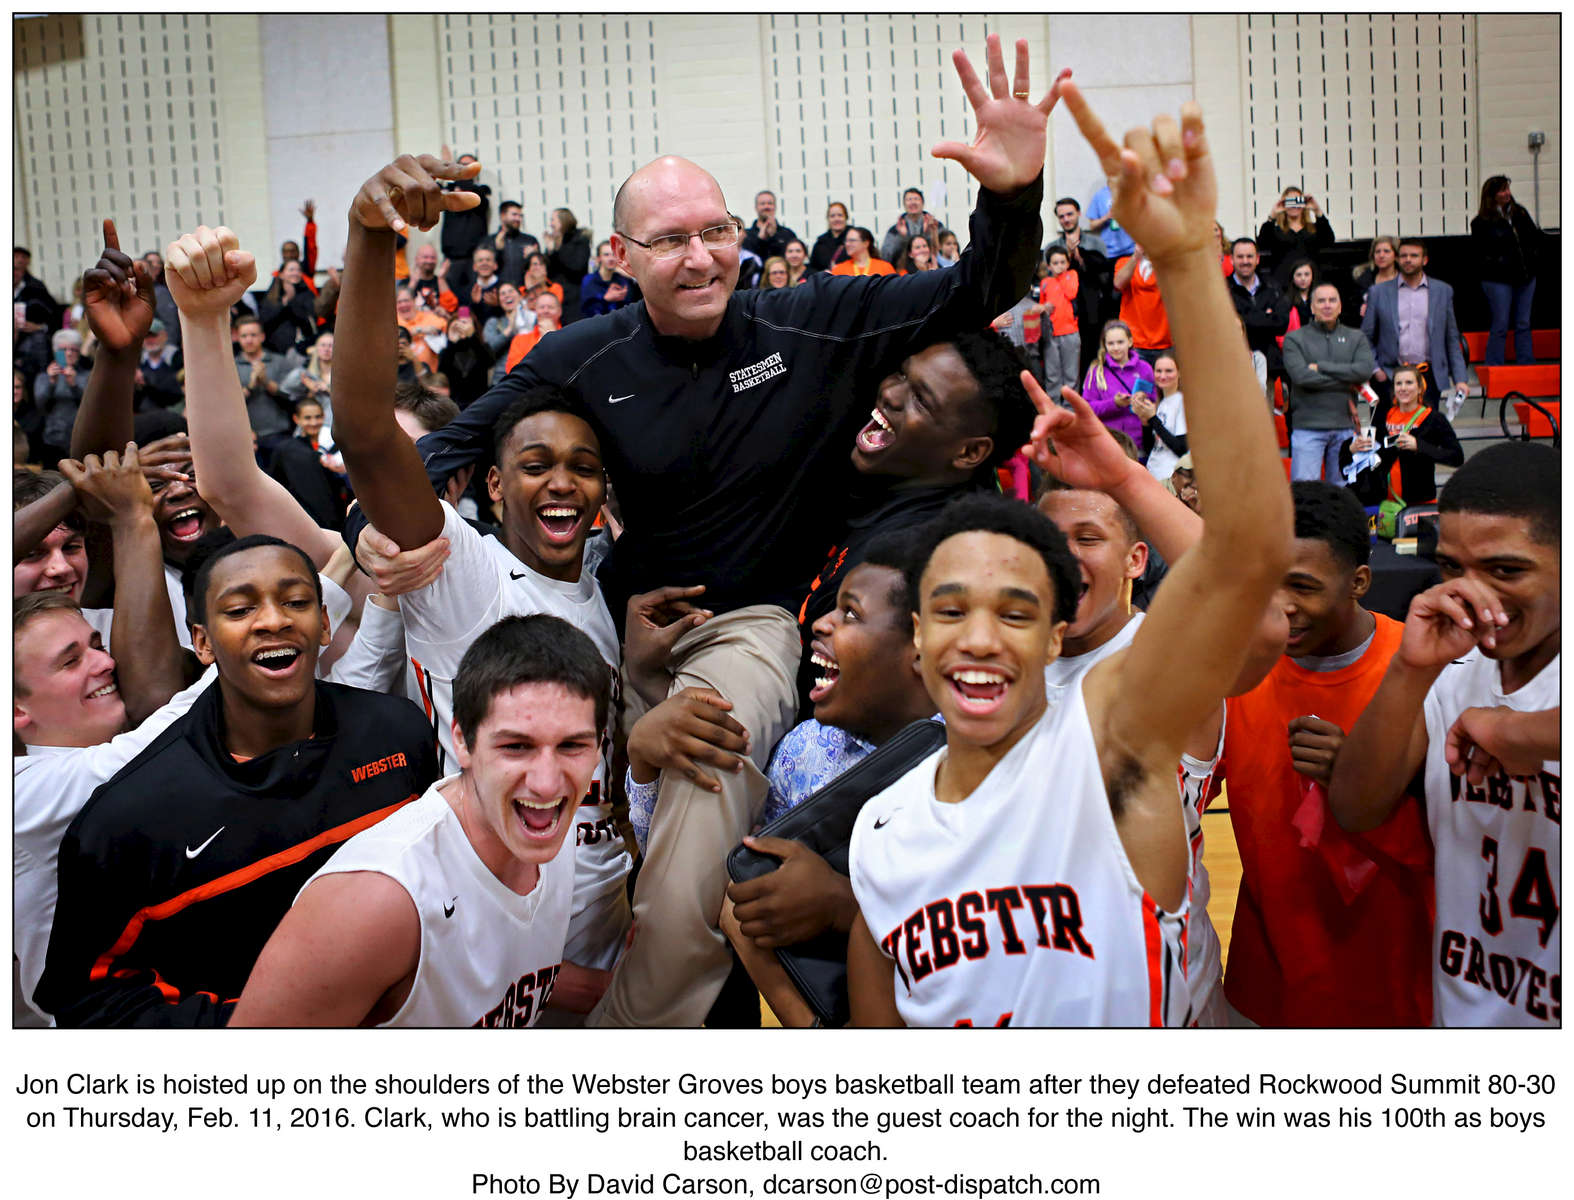 Jon Clark is hoisted up on the shoulders of the Webster Groves boys basketball team after they defeated Rockwood Summit 80-30 on Thursday, Feb. 11, 2016. Clark, who is battling brain cancer, was the guest coach for the night. The win was his 100th as boys basketball coach.Photo By David Carson, dcarson@post-dispatch.com